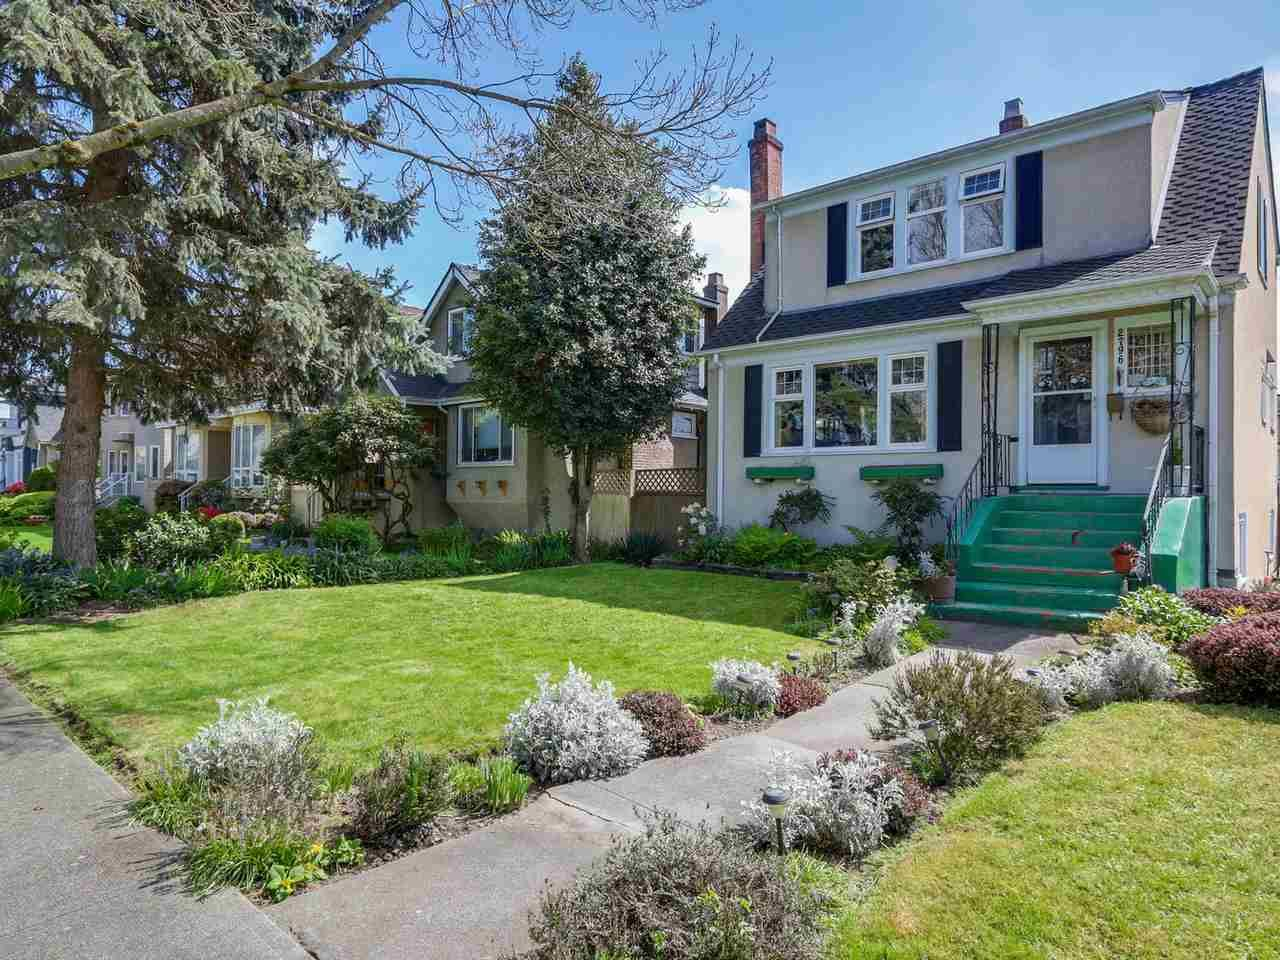 Photo 2: Photos: 2796 W 21ST Avenue in Vancouver: Arbutus House for sale (Vancouver West)  : MLS®# R2078868